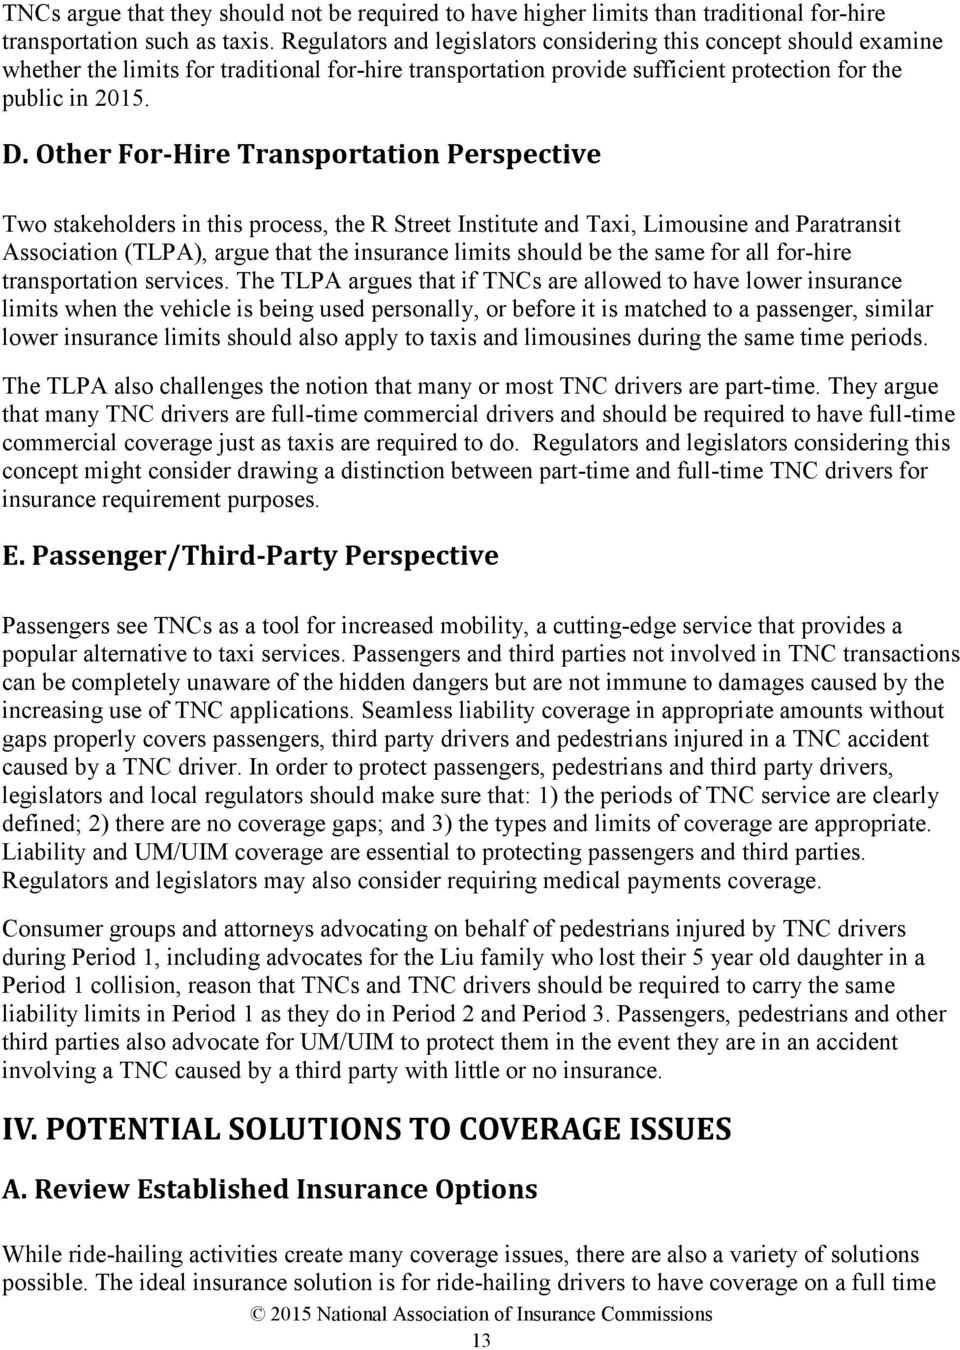 Other For-Hire Transportation Perspective Two stakeholders in this process, the R Street Institute and Taxi, Limousine and Paratransit Association (TLPA), argue that the insurance limits should be